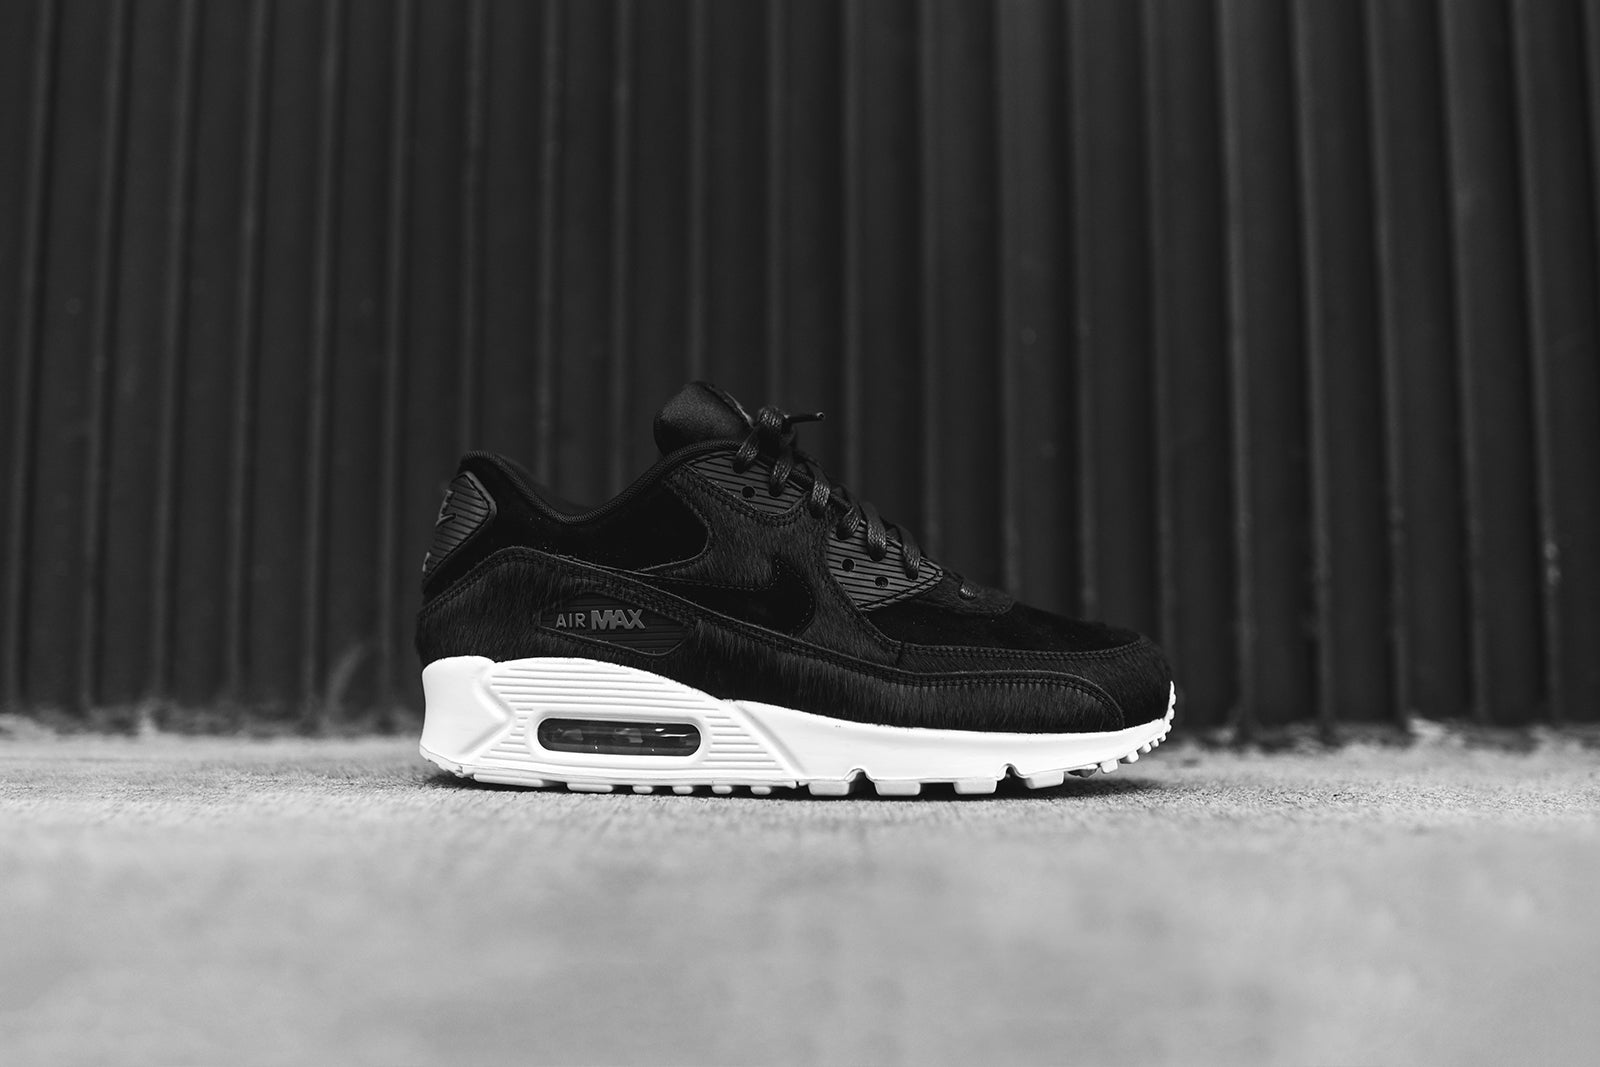 save off 3fd8a 05a80 Nike WMNS Air Max 90 LX - Black / White – Kith